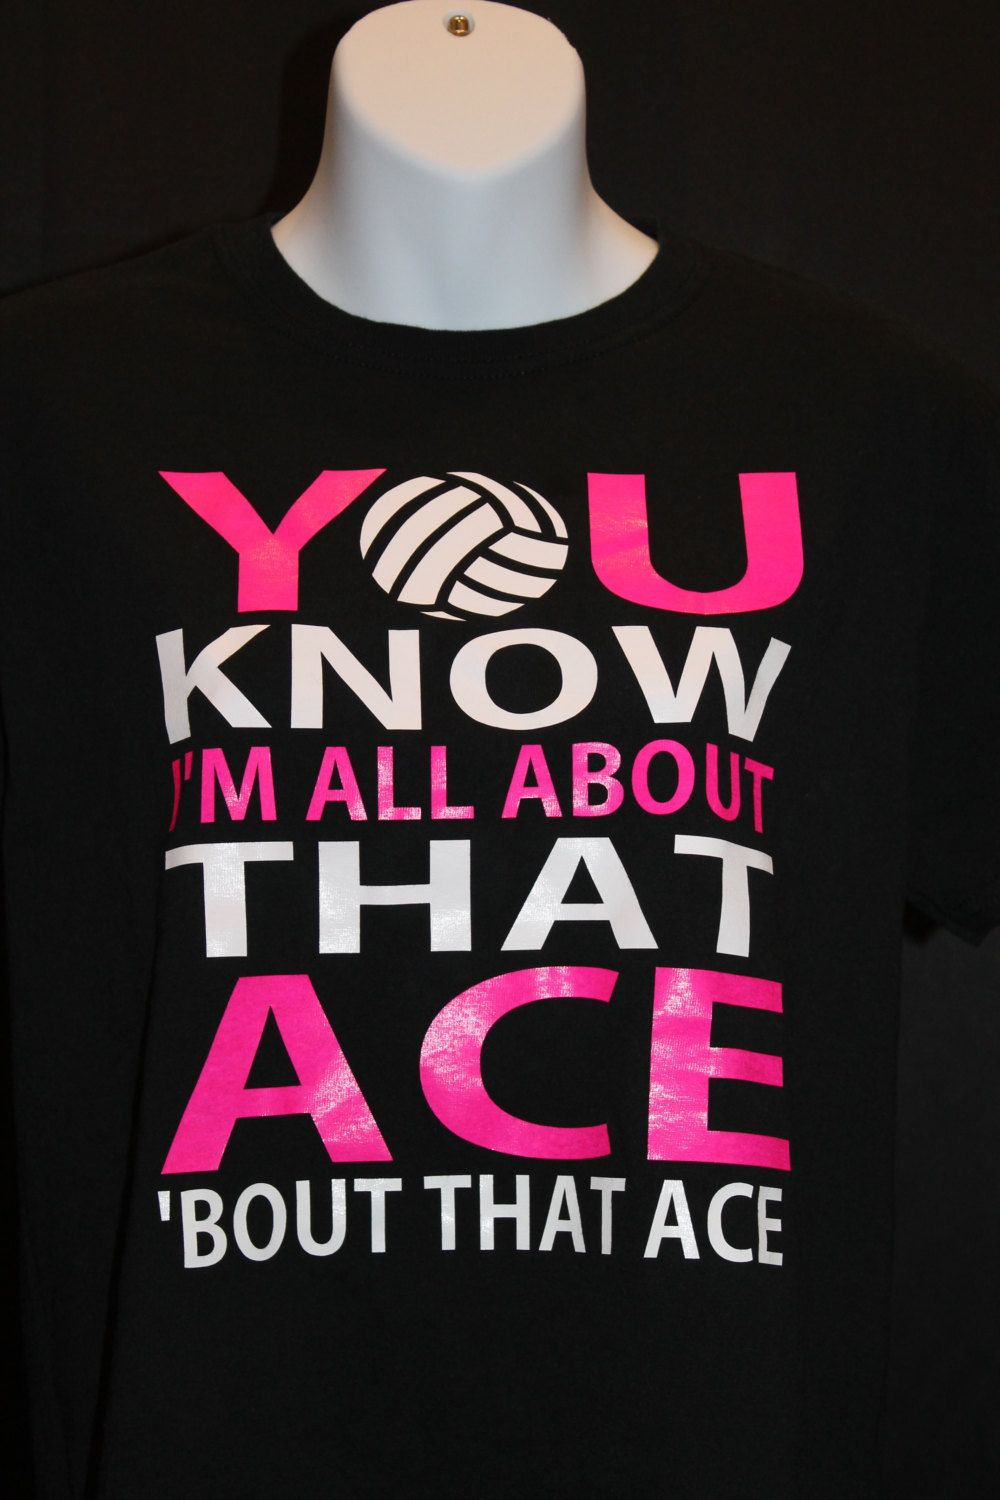 Volleyball Shirt You Know I 39 M All About That Ace 39 Bout That Ace Volleyball Shirt Womens Funny Volleyball Shirts Volleyball Shirts Volleyball Tshirts